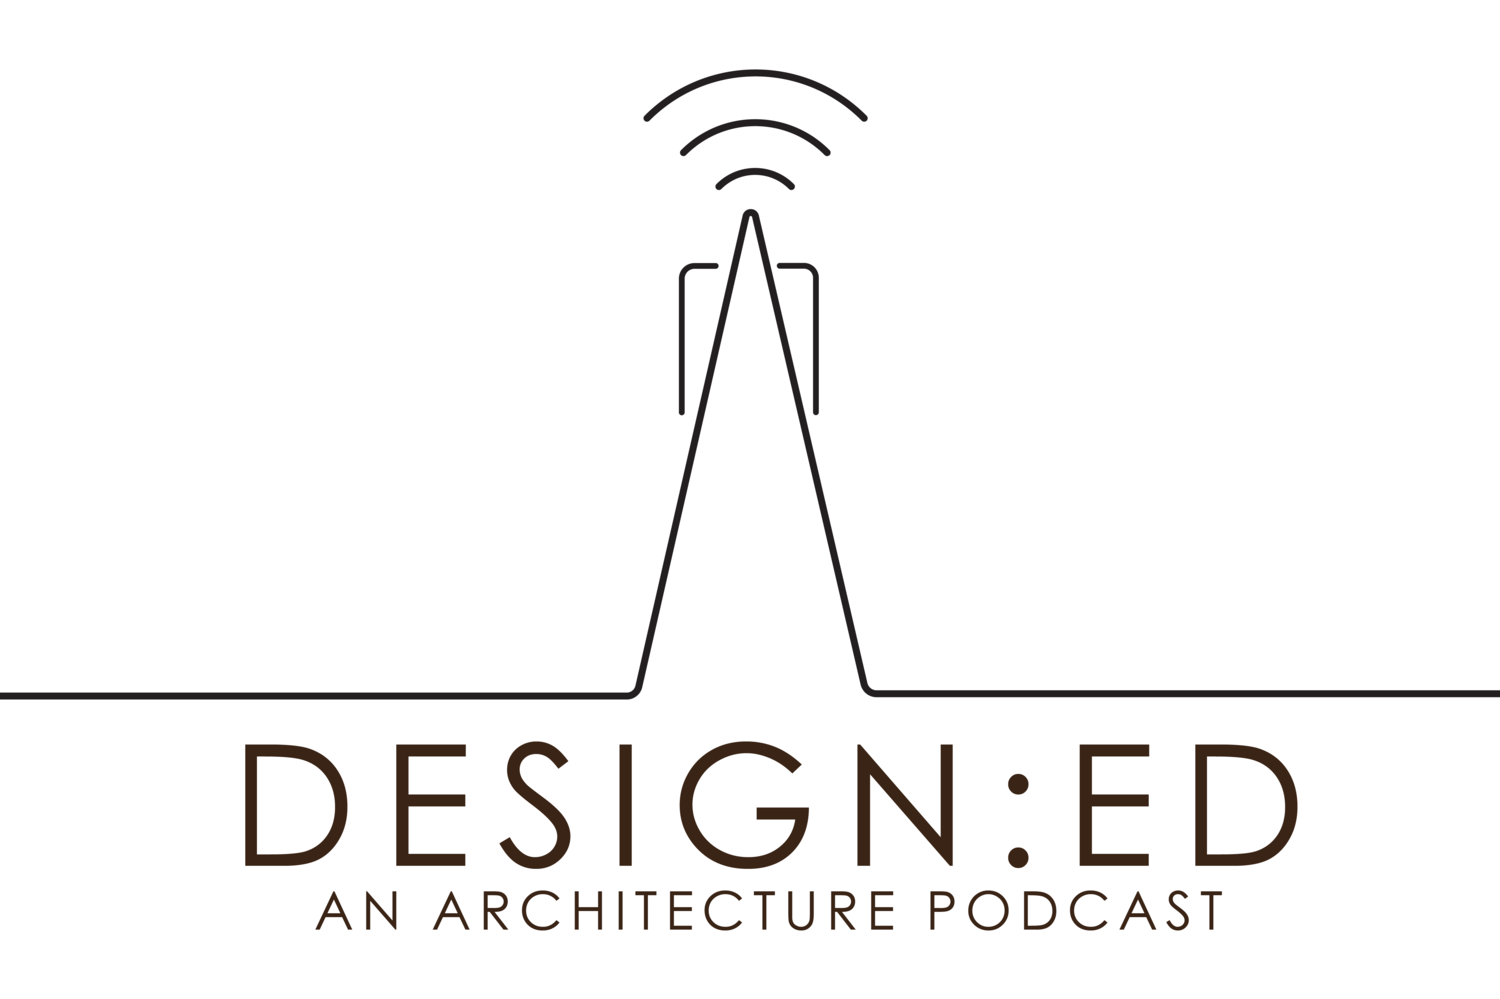 Designed Podcast Logo